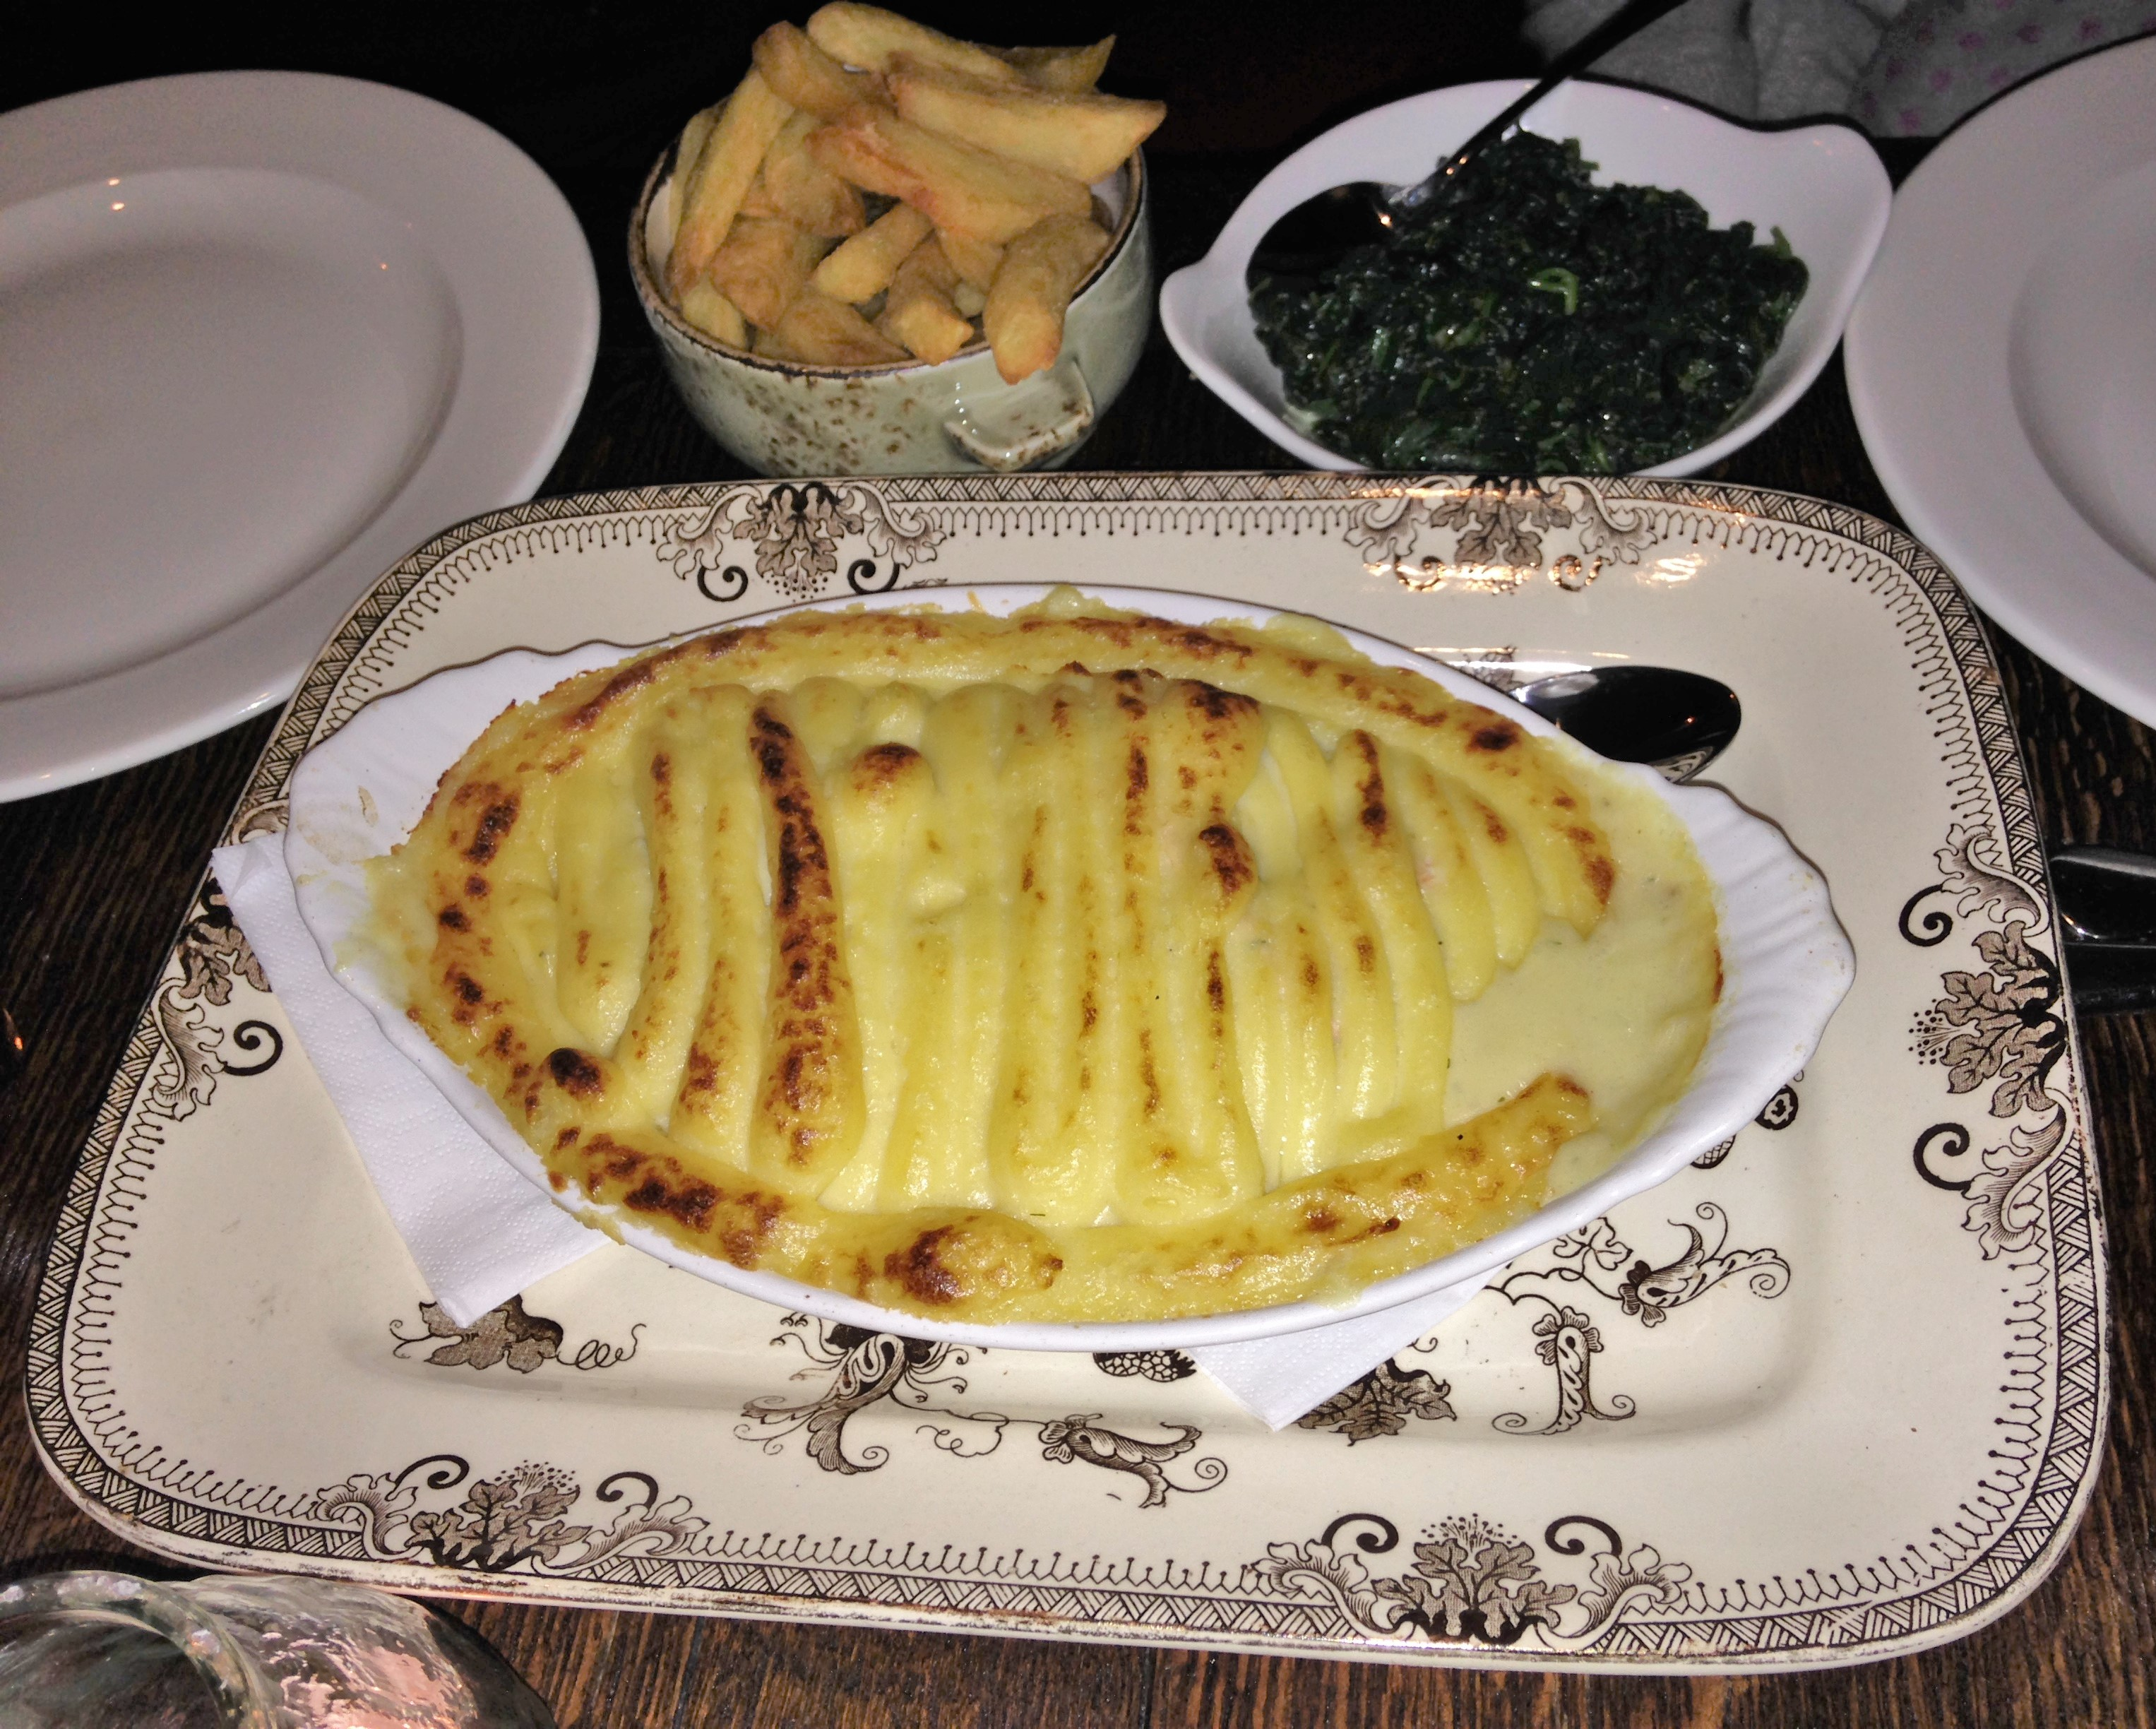 Duchy Arms fish pie for two, with handcut chips and spinach - kenningtonrunoff.com